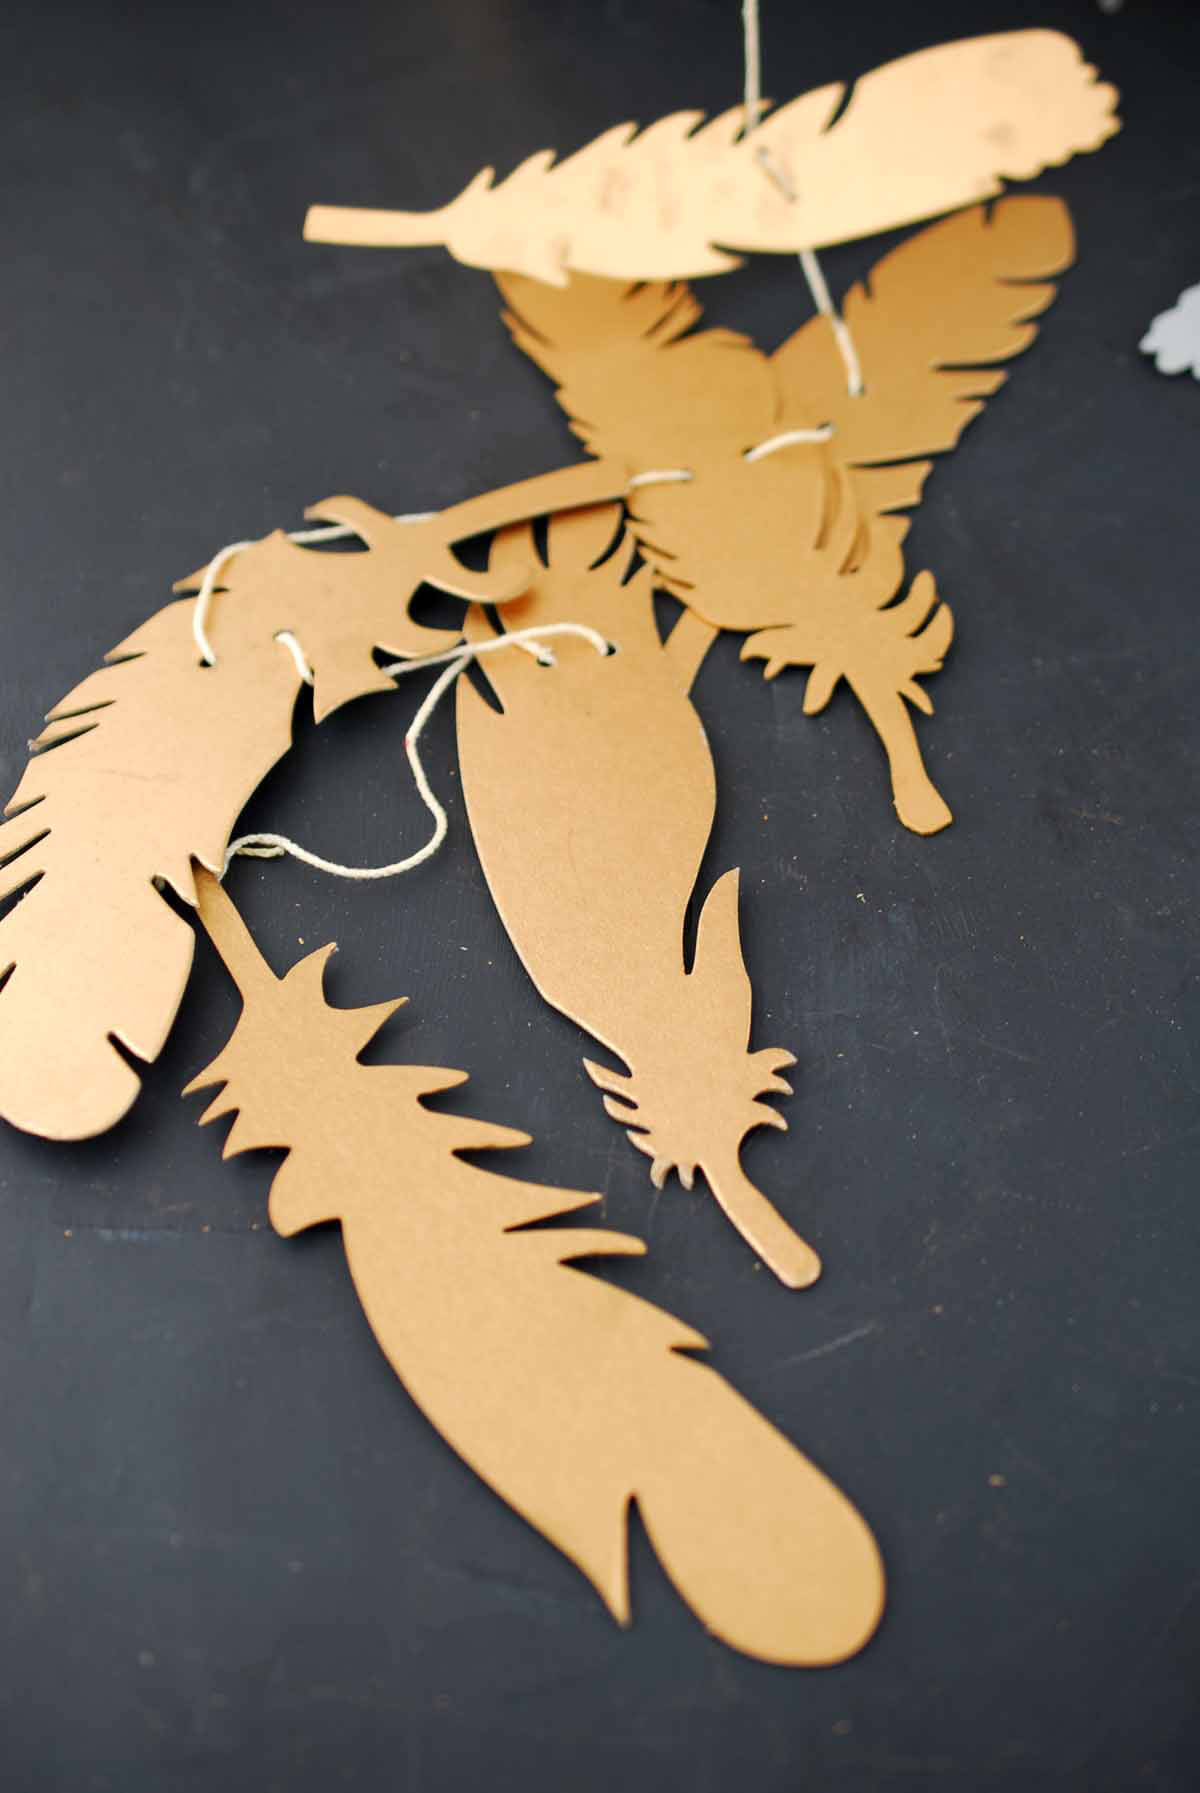 Six 6' Metallic Feather Party Garlands